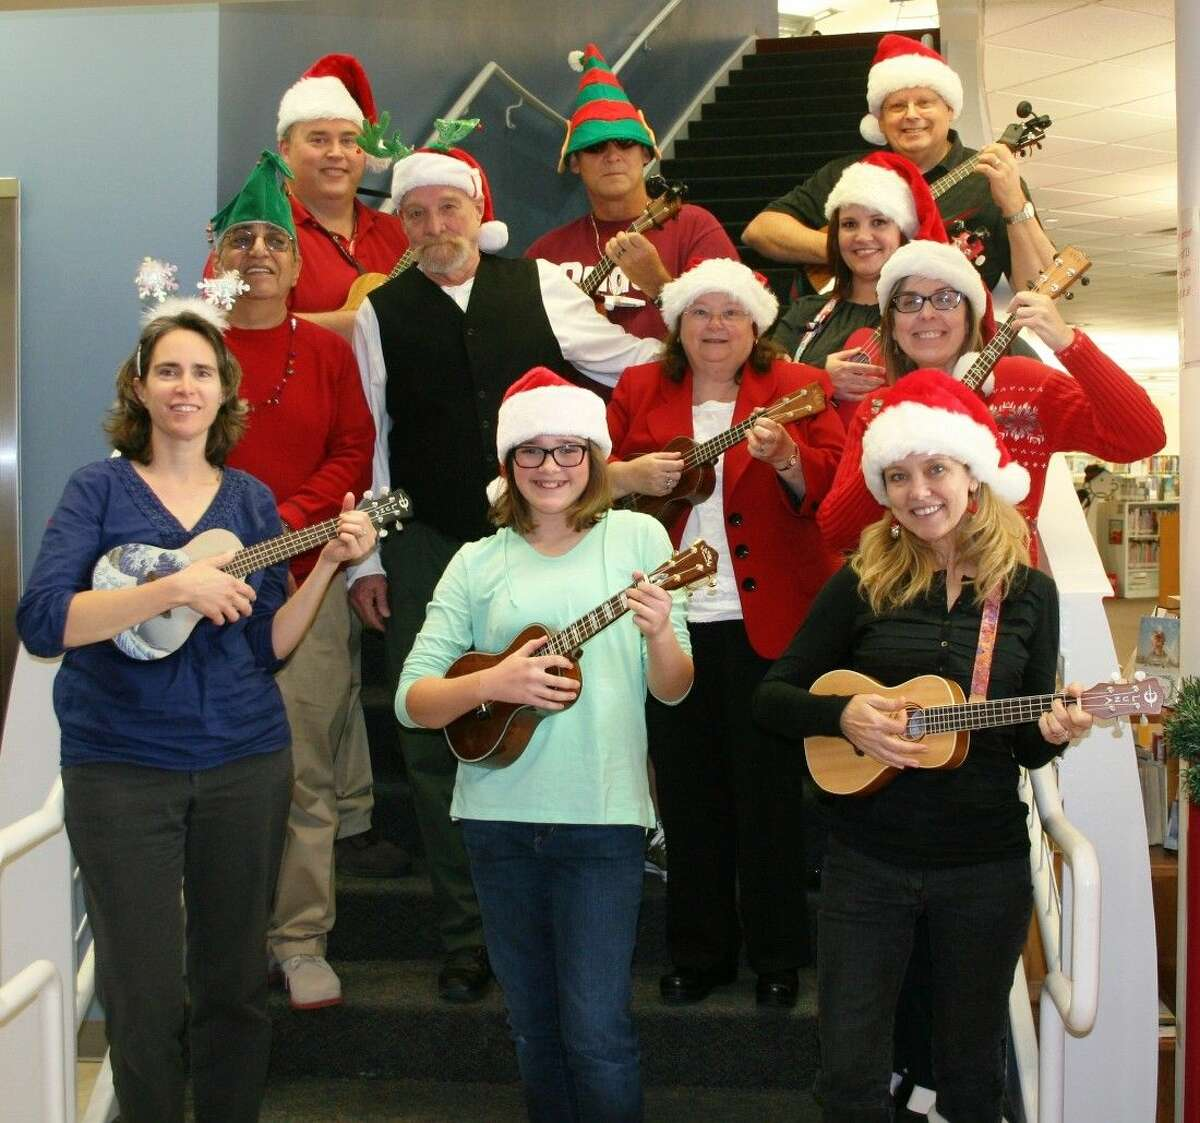 The ukulele group, which hosts classes at R.B. Tullis Branch Library in New Caney, performed for those present at the holiday open house, hosted by the library staff members on Dec. 9.